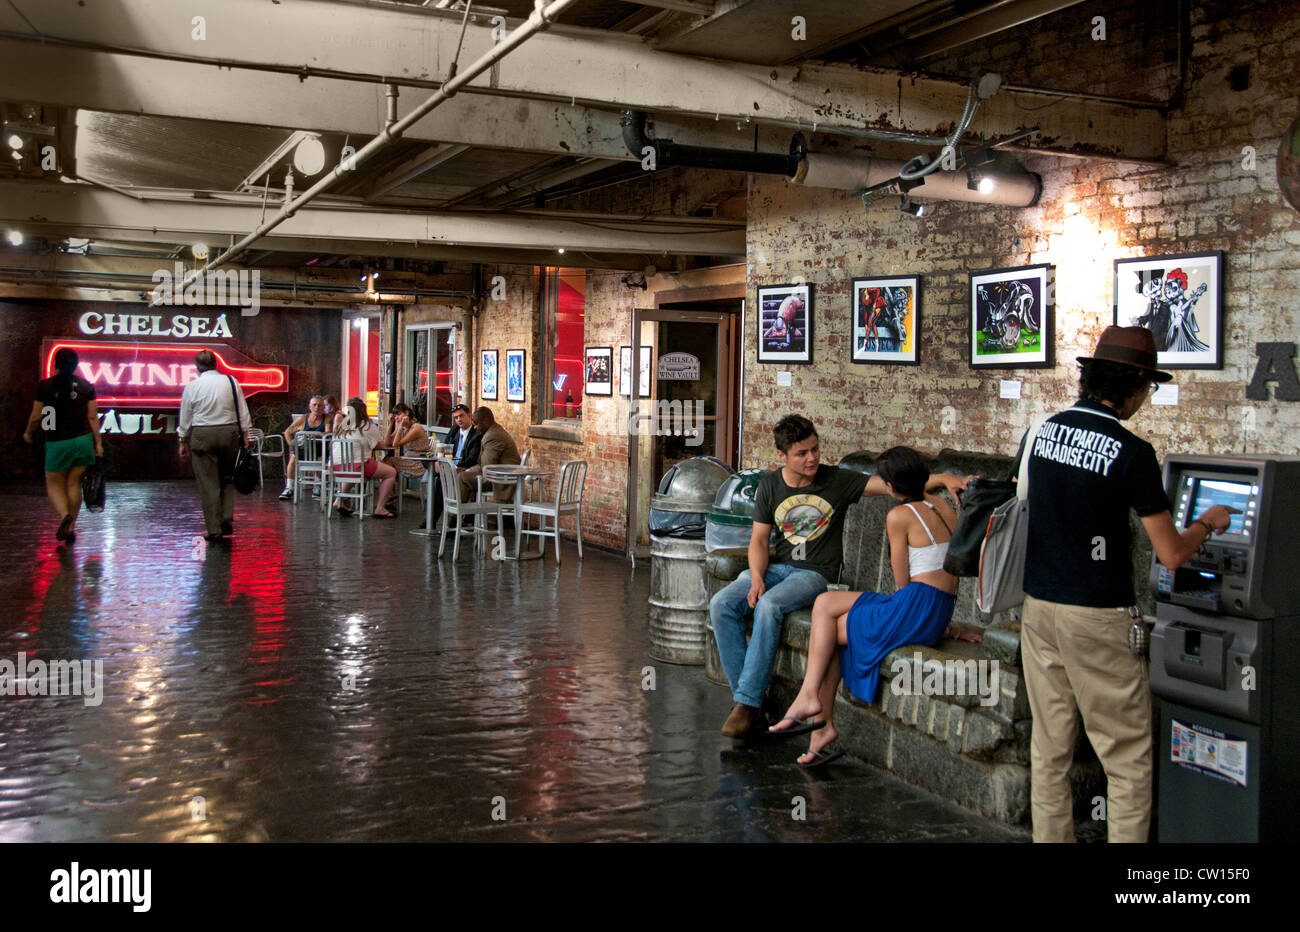 Meatpacking District Food Court